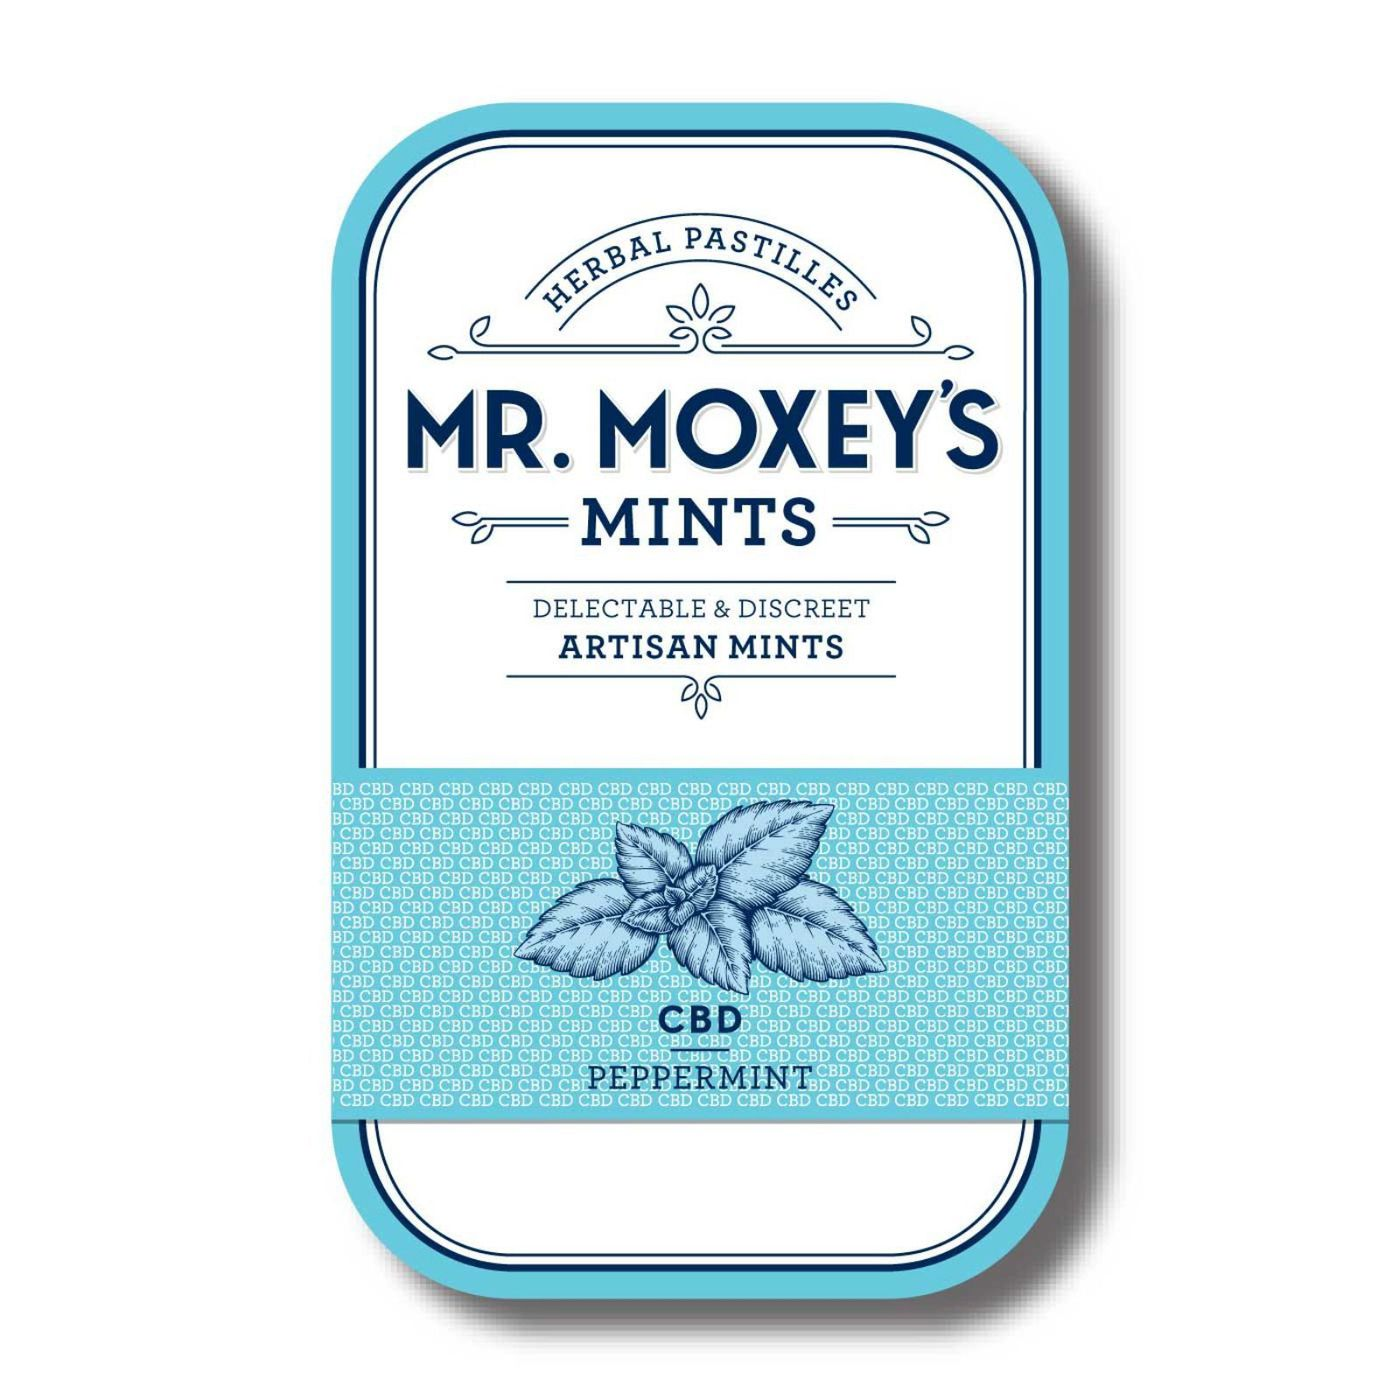 300 MG Mr. Moxey's CBD Peppermints $40